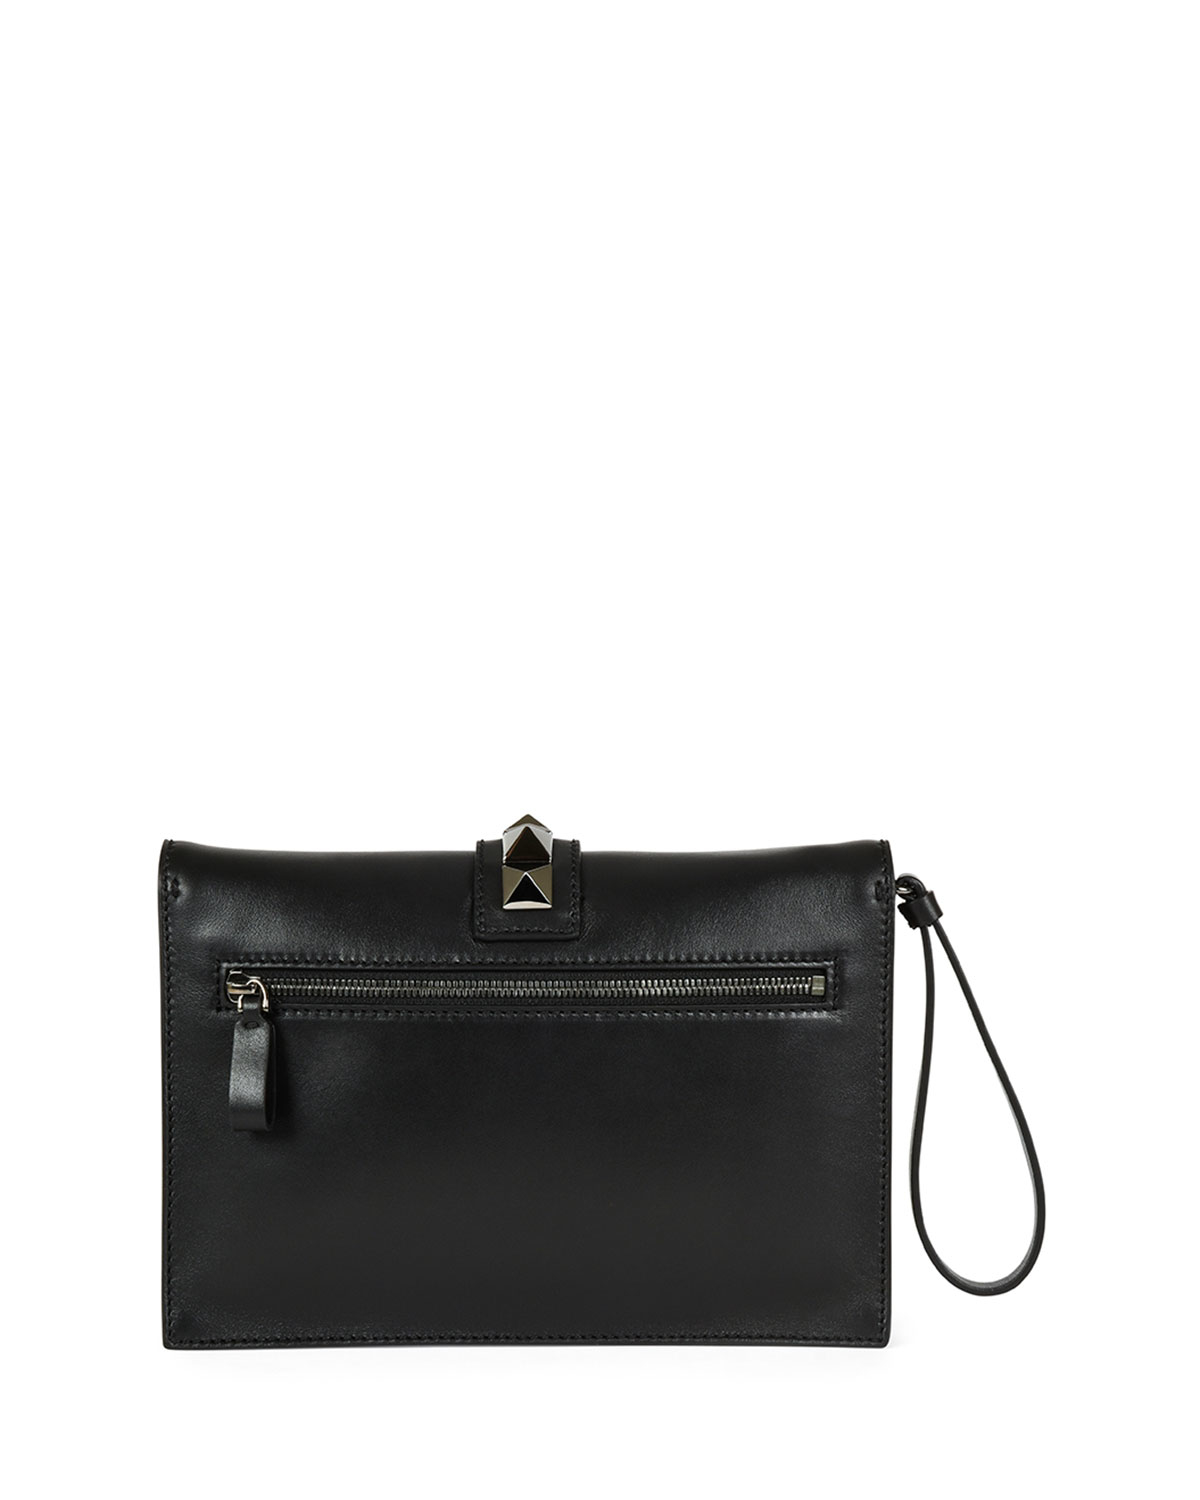 Women's Big Buddha Clutches Acquired by shoe mogul Steven Madden in , Californian brand Big Buddha is fast becoming a front-runner in affordable, fashion-forward women's bags. Lightweight, on-point and versatile, Big Buddha bags are a shortcut to making a fabulous fashion statement.